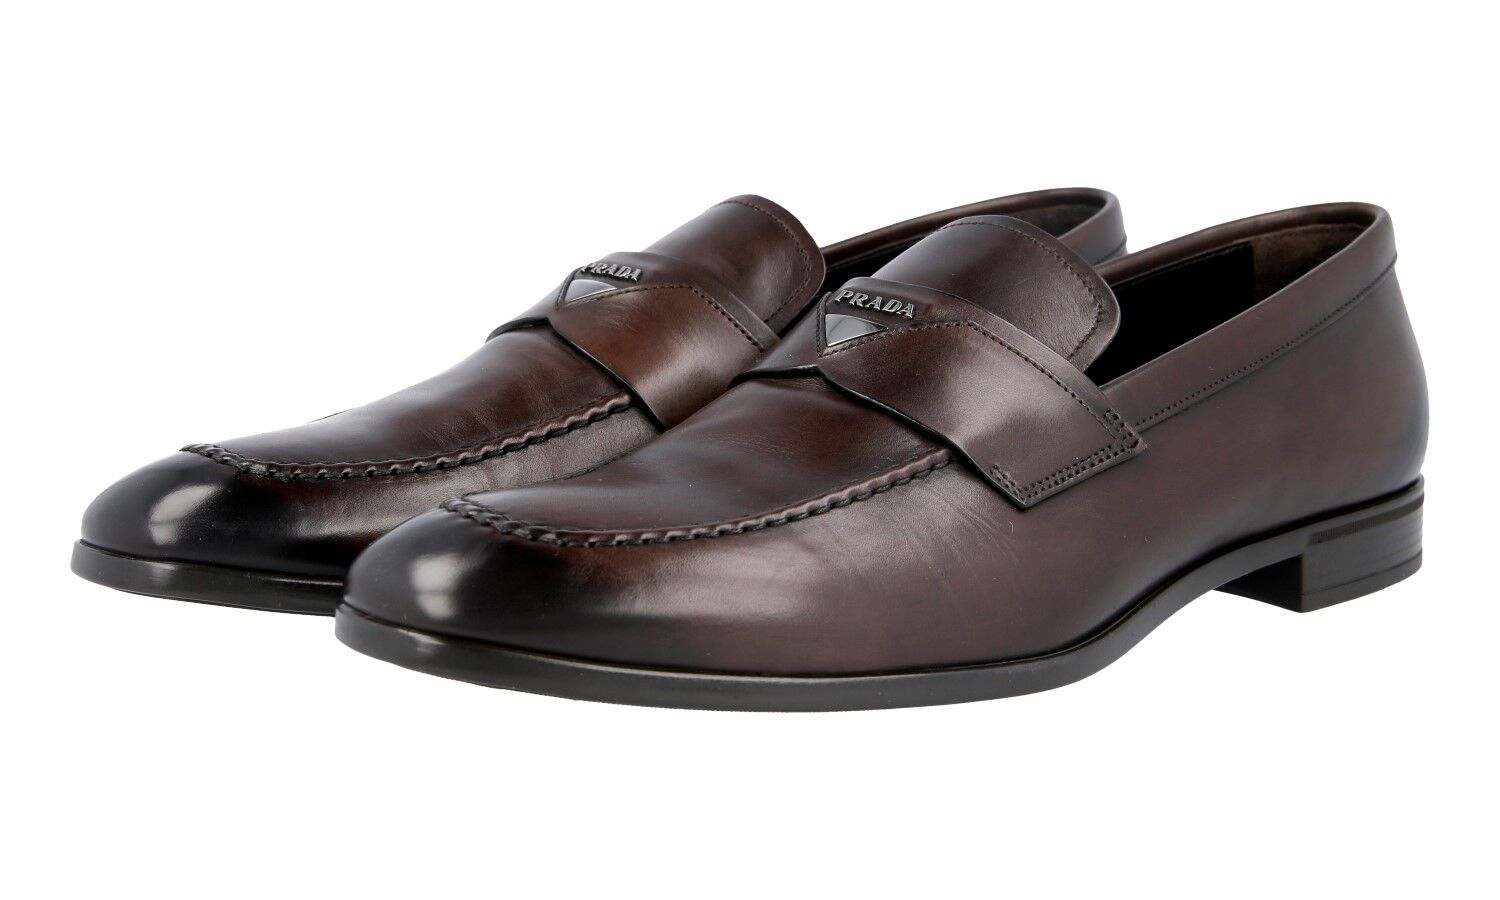 AUTH LUXURY PRADA BUSINESS SHOES LOAFER 2DC182 BROWN NEW US 11 EU 44 44,5